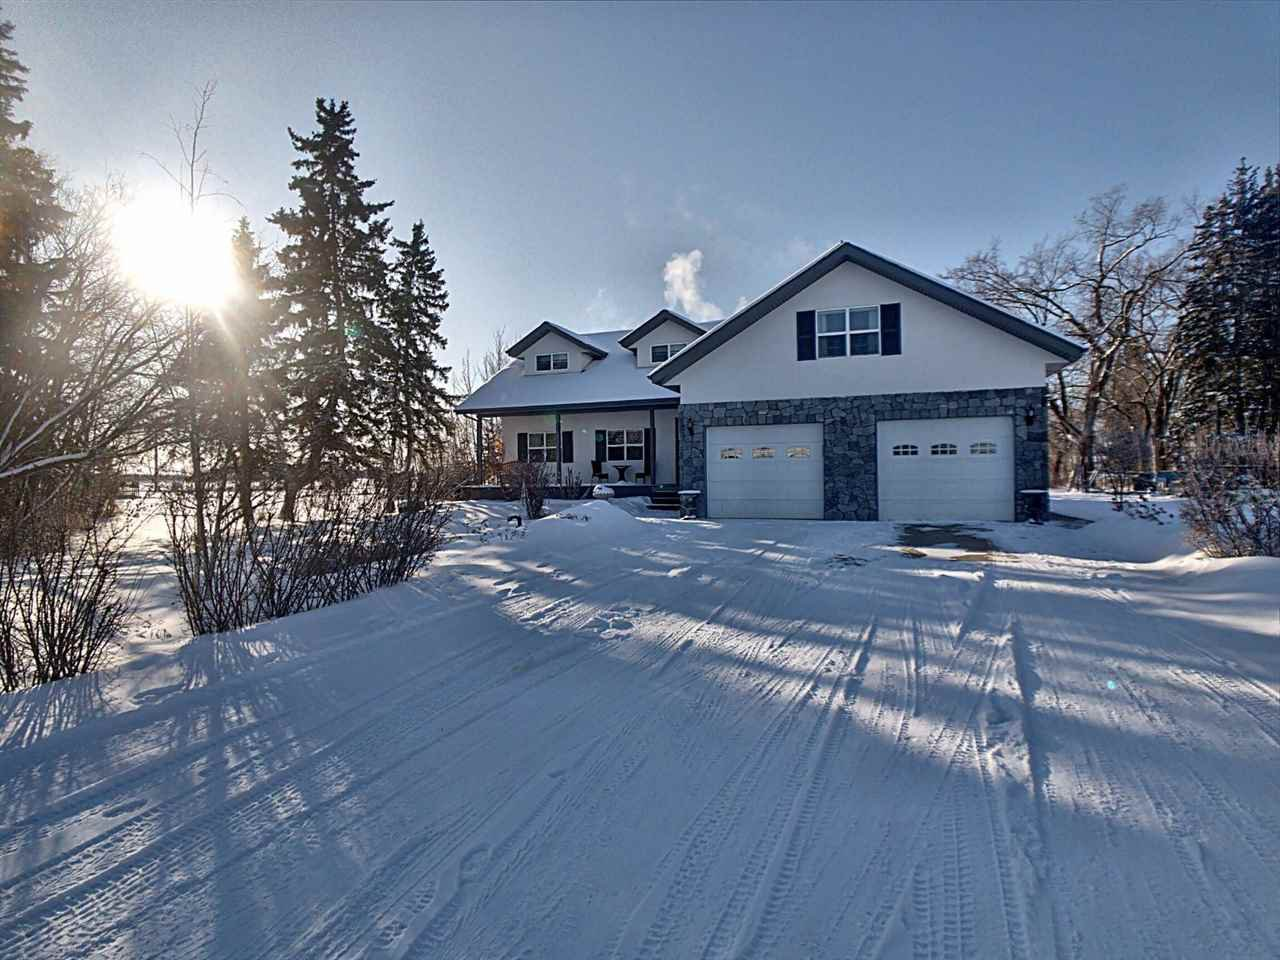 Main Photo: 49409 Rge Rd 272: Rural Leduc County House for sale : MLS®# E4184596